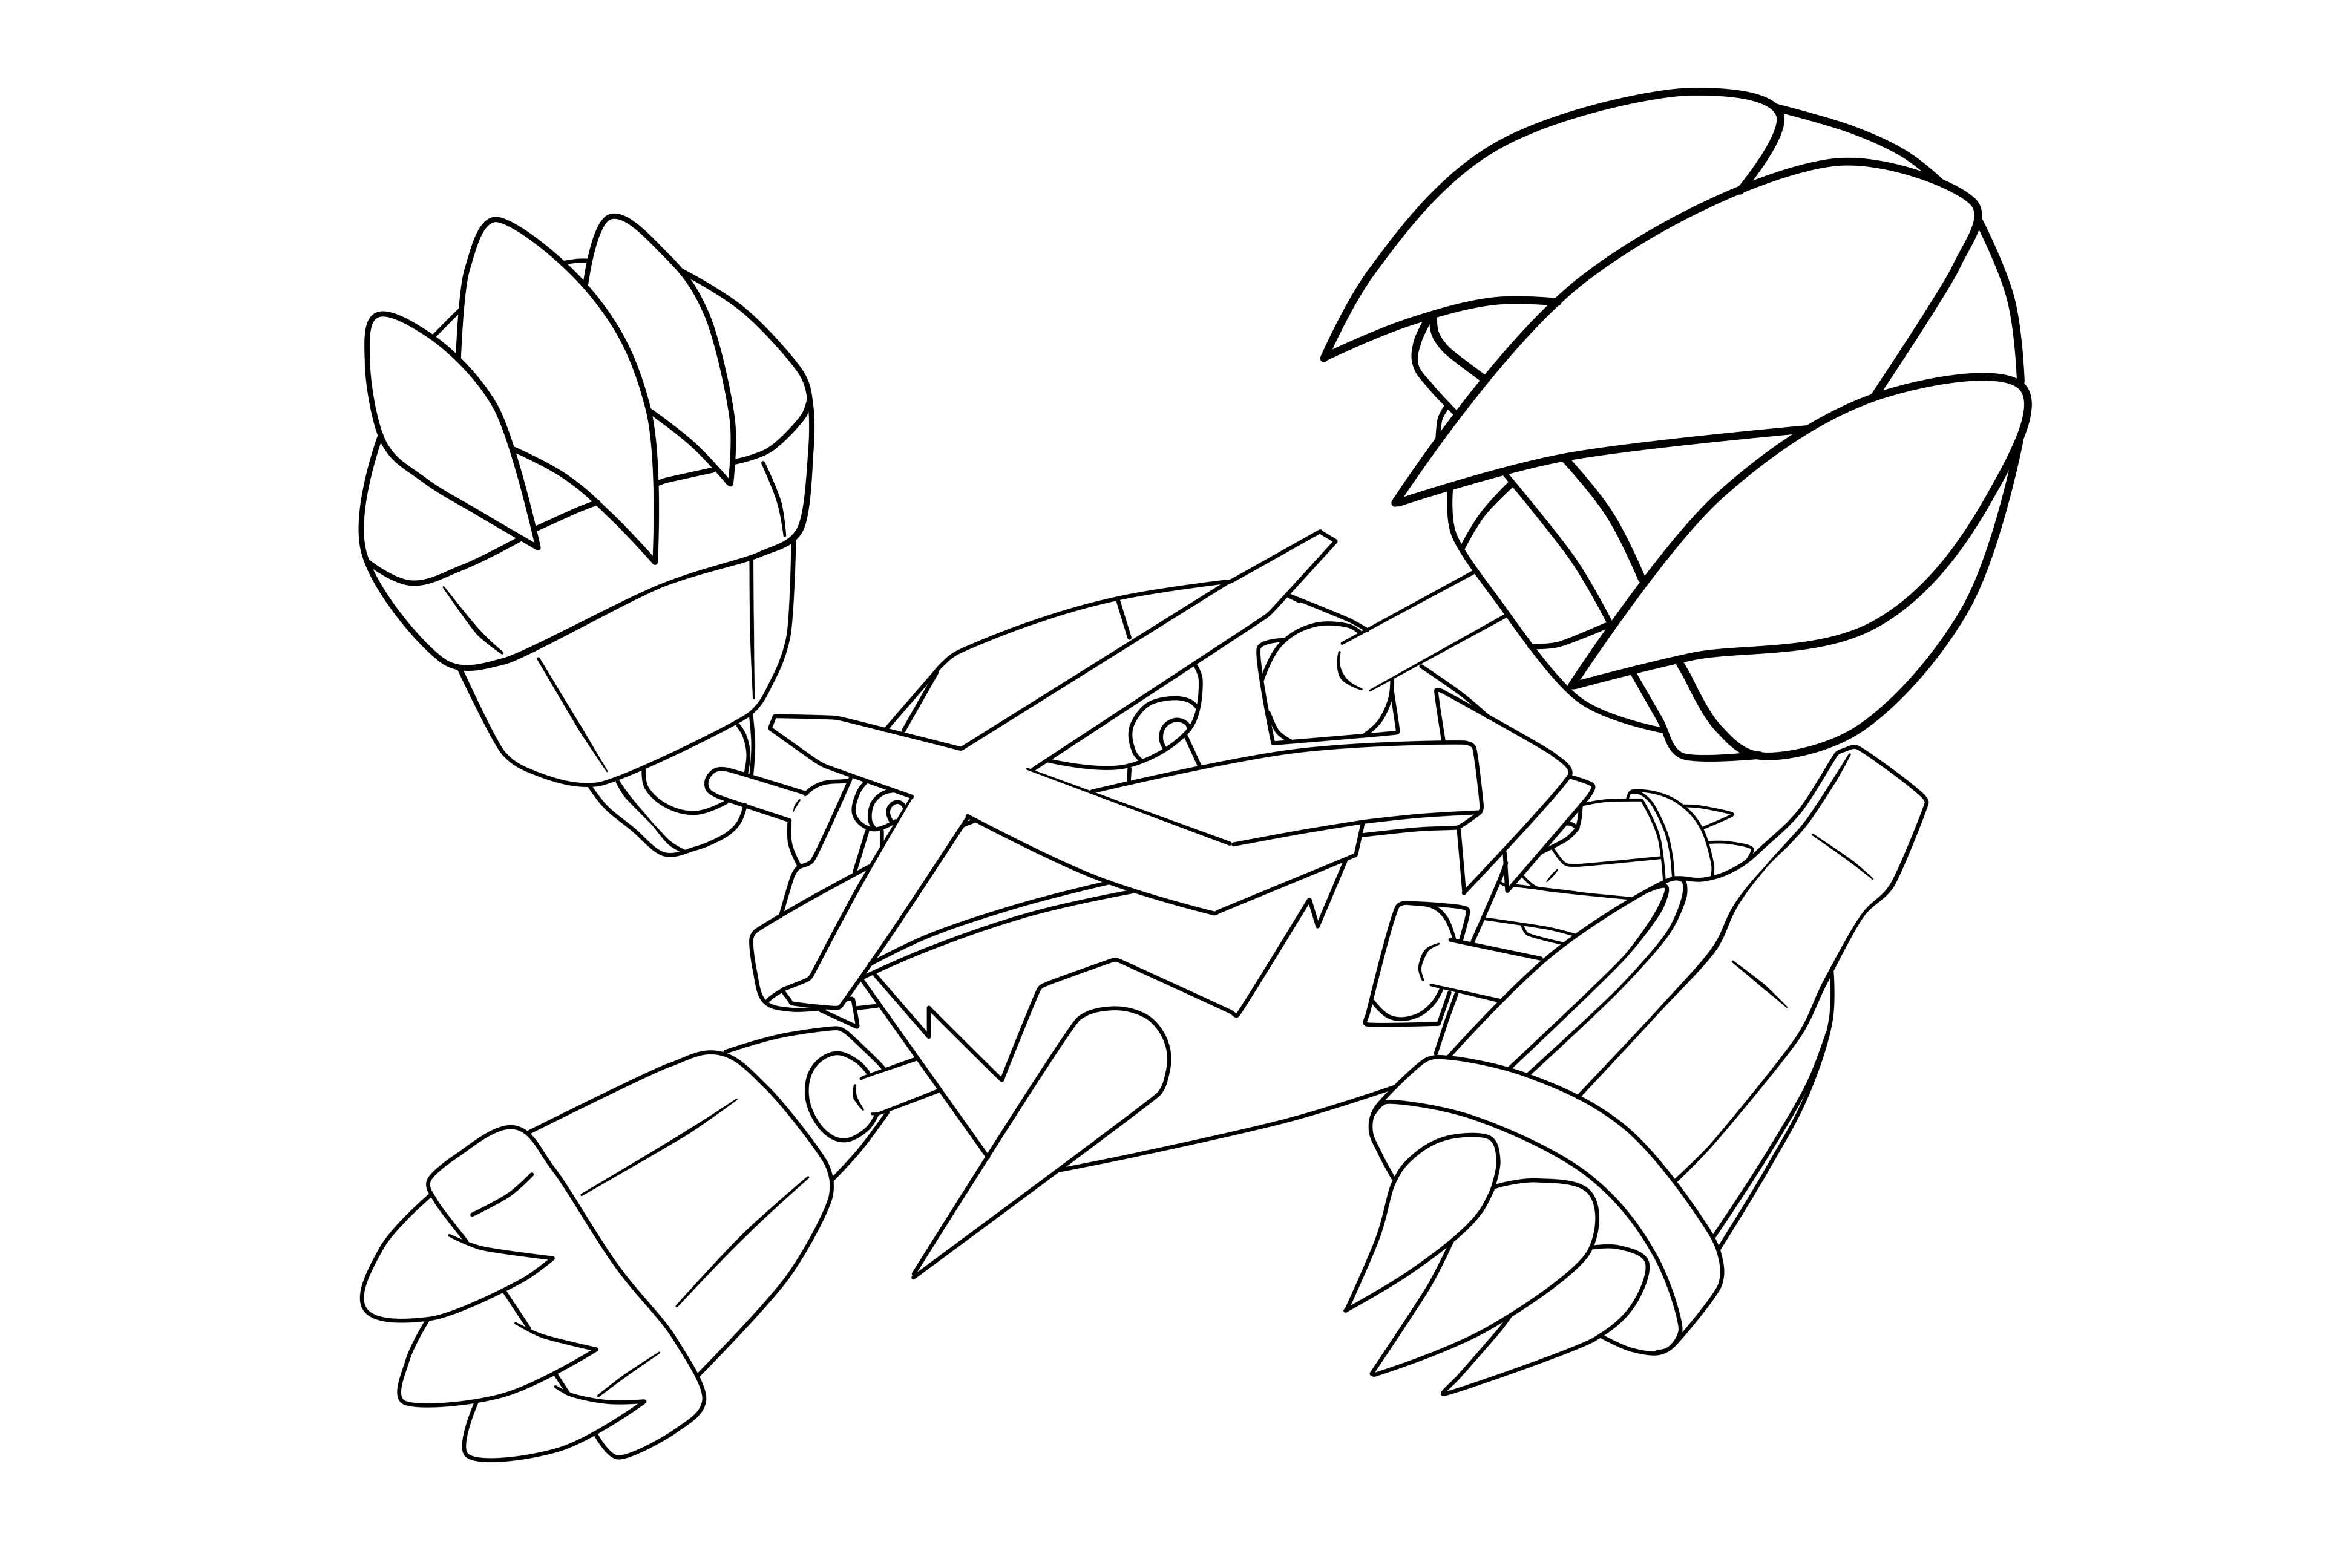 groudon pokemon coloring page groudon from pokemon coloring page free printable coloring pokemon groudon page